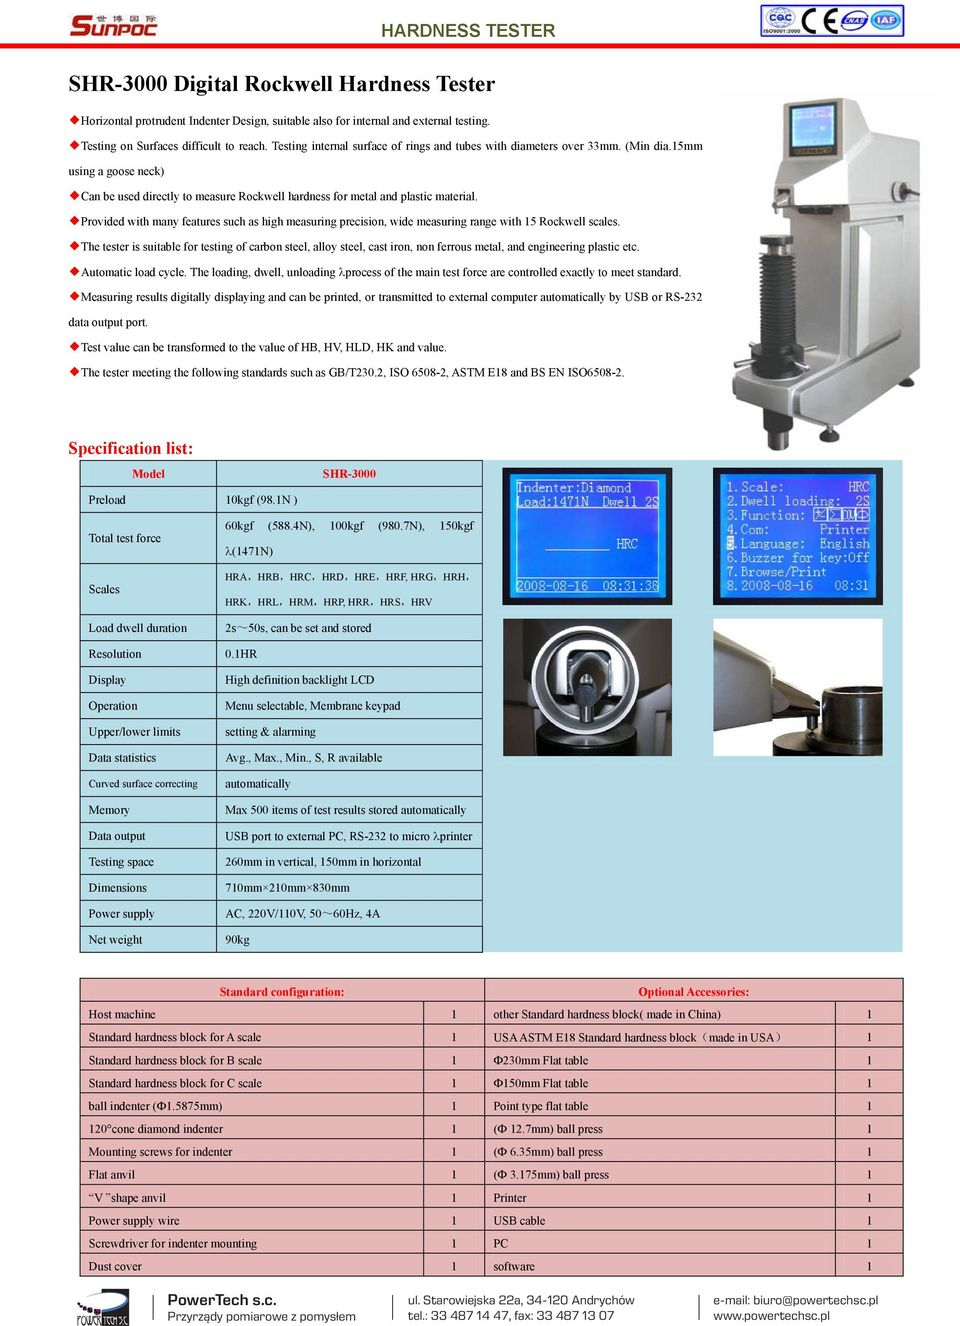 Provided with many features such as high measuring precision, wide measuring range with 15 Rockwell scales.